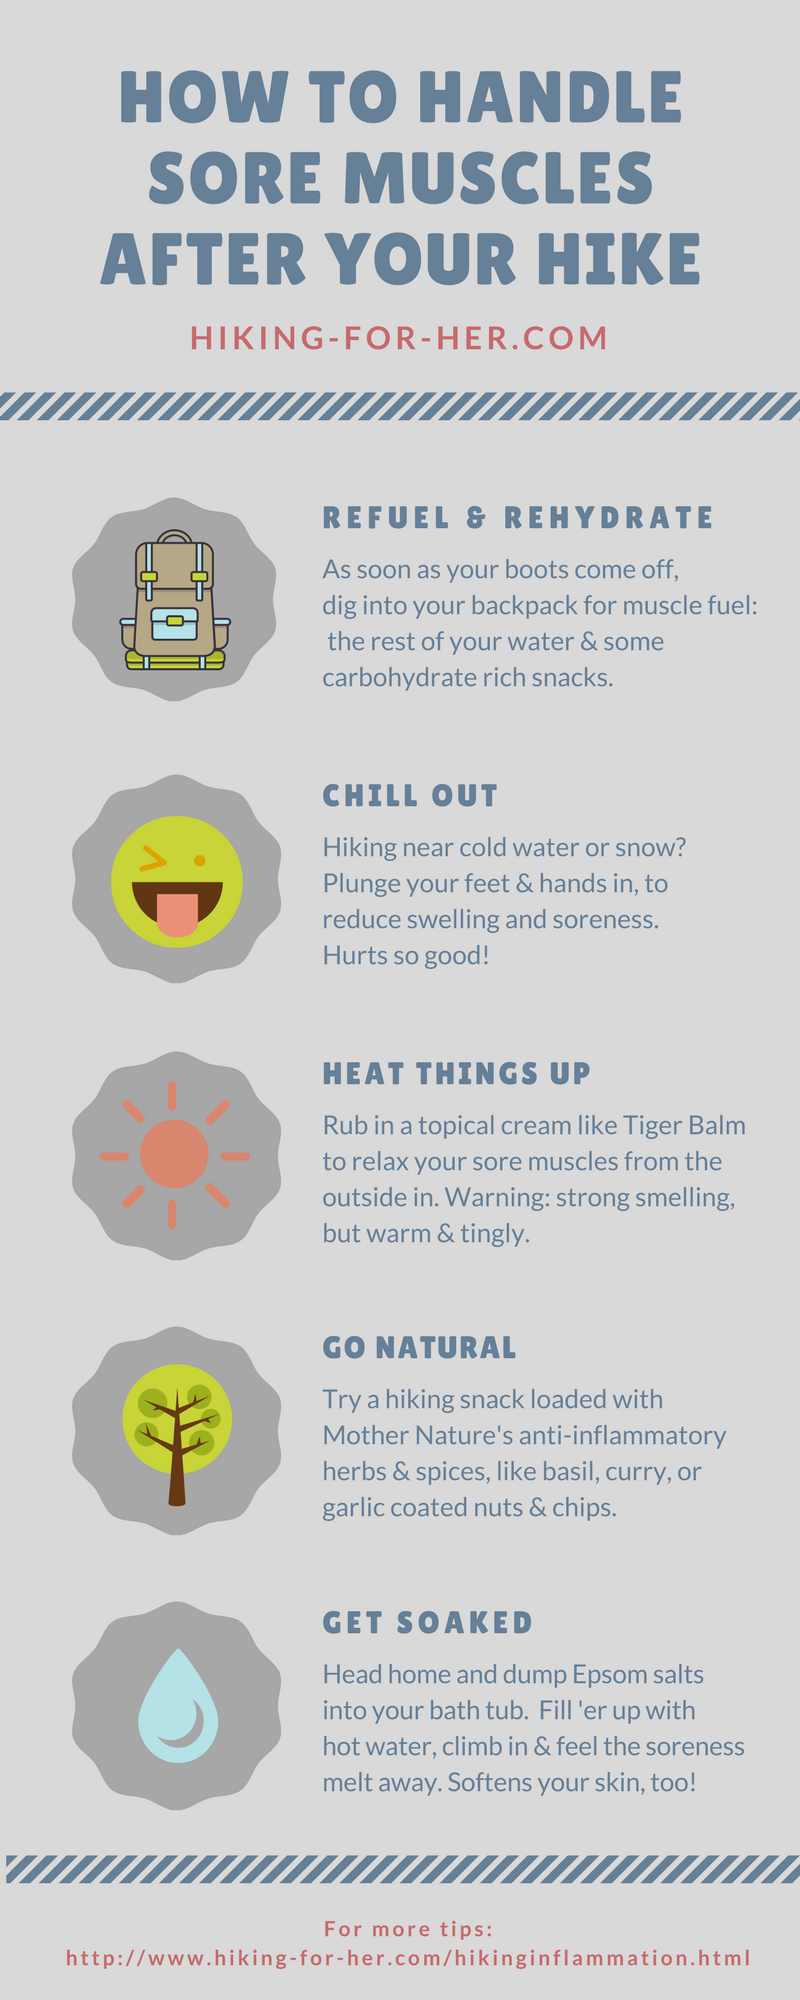 Sore muscles from hiking? Use these self care tips from Hiking For Her to get back on the trail fast. #hiking #backpacking #soremuscles